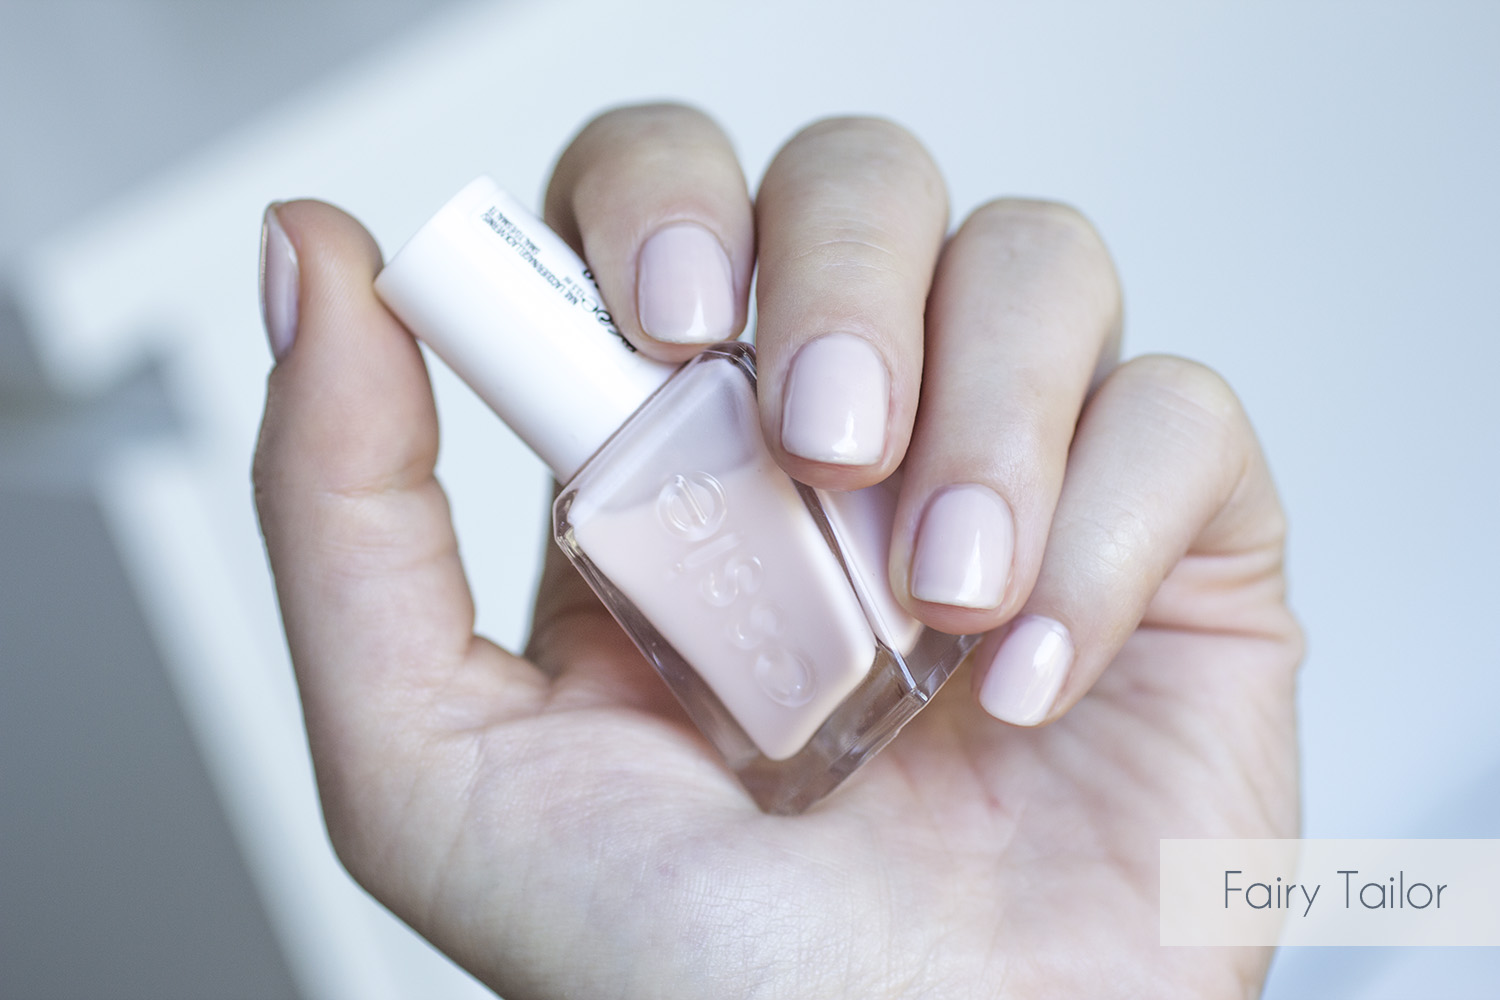 Gel Couture Fairy Tailor - Essie